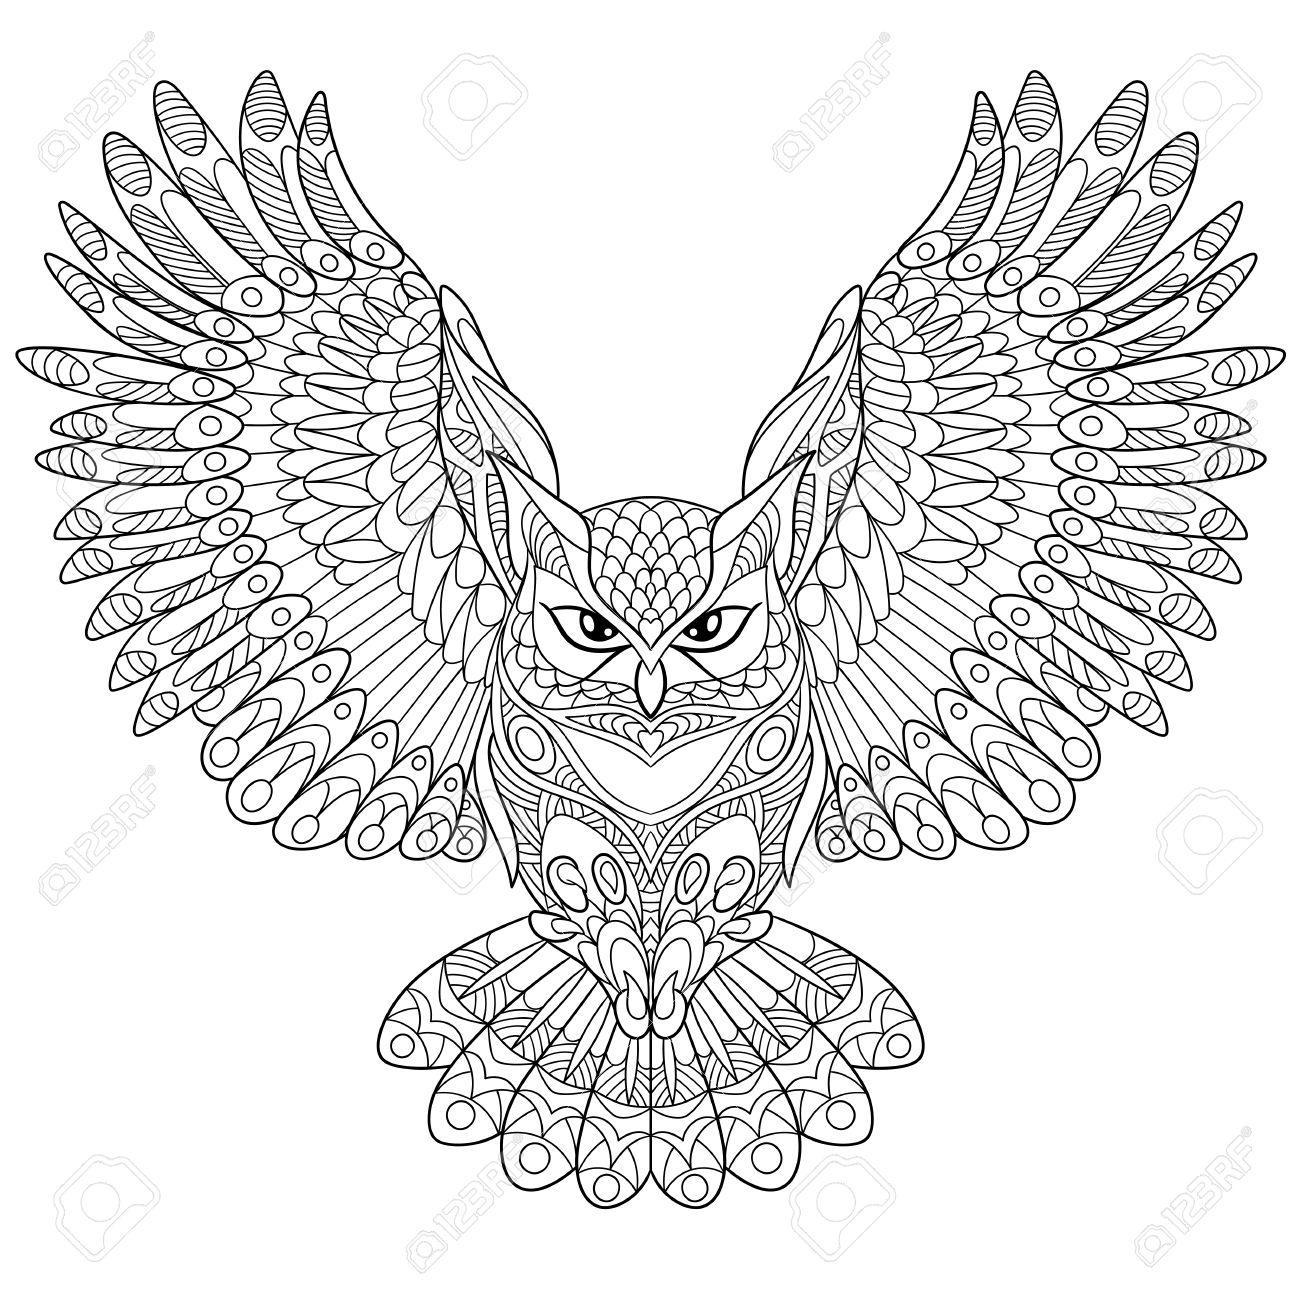 cartoon eagle owl isolated on white background hand drawn sketch